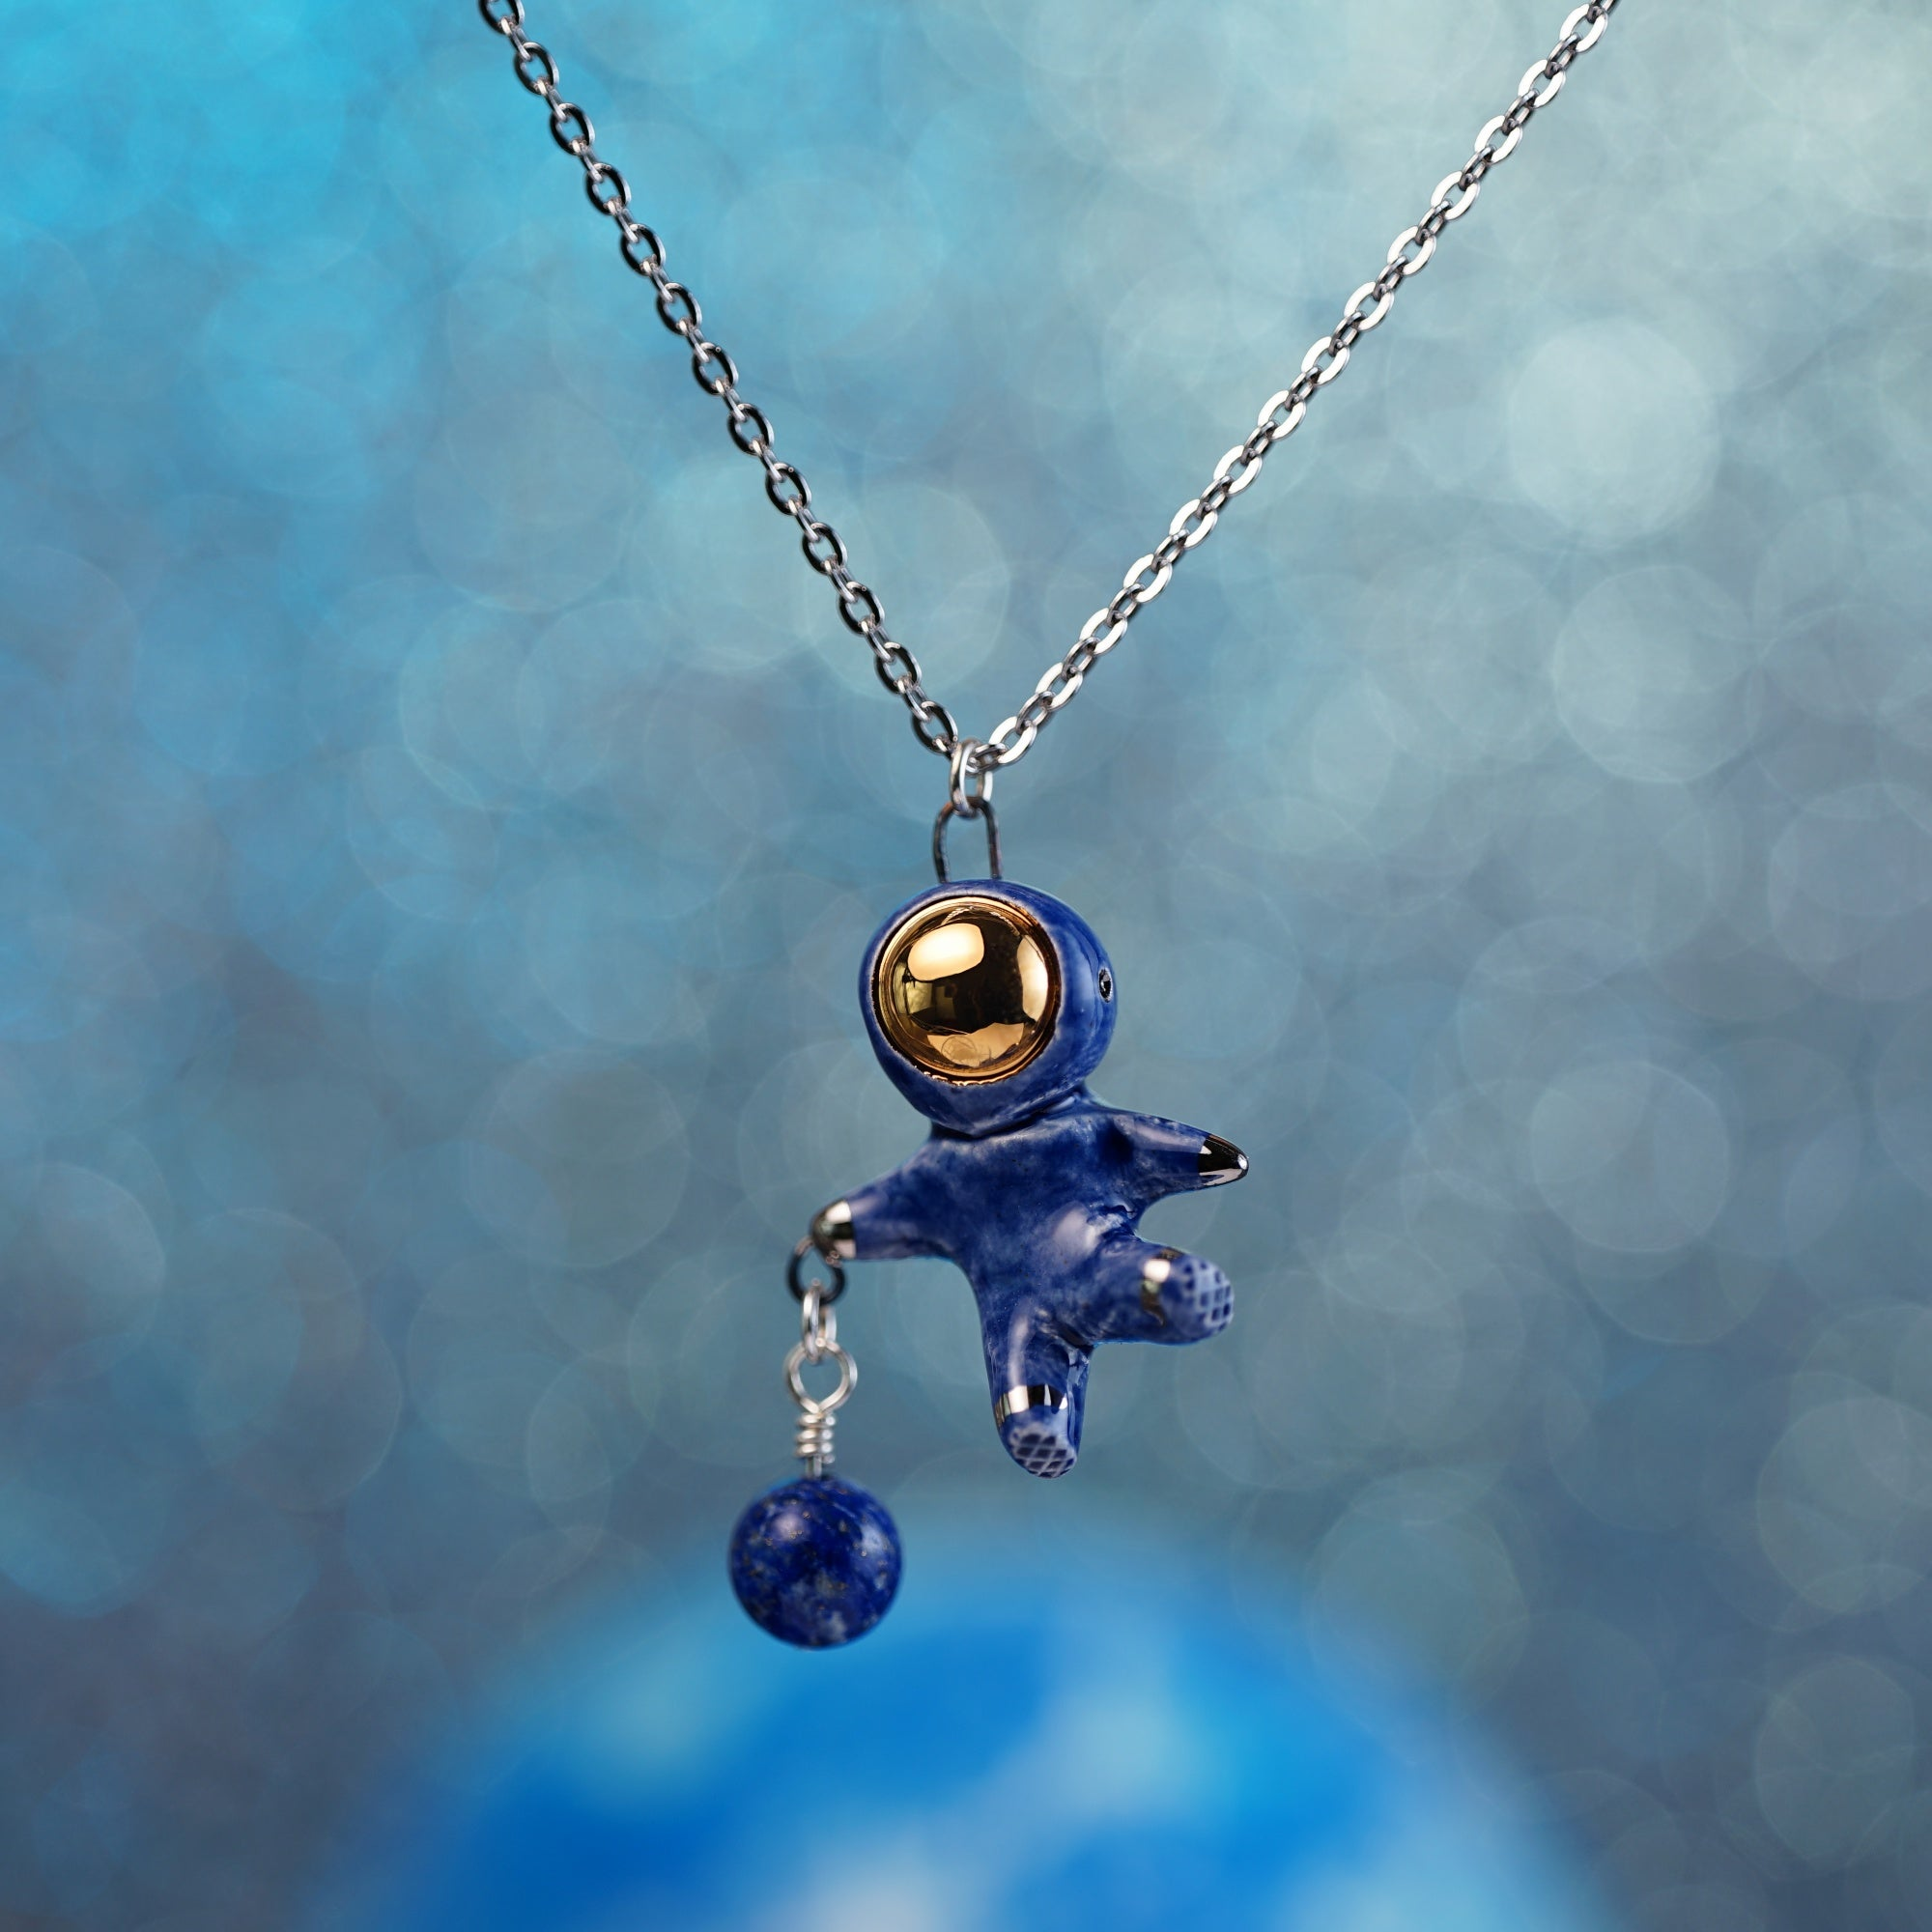 Charm Astronaut Necklace